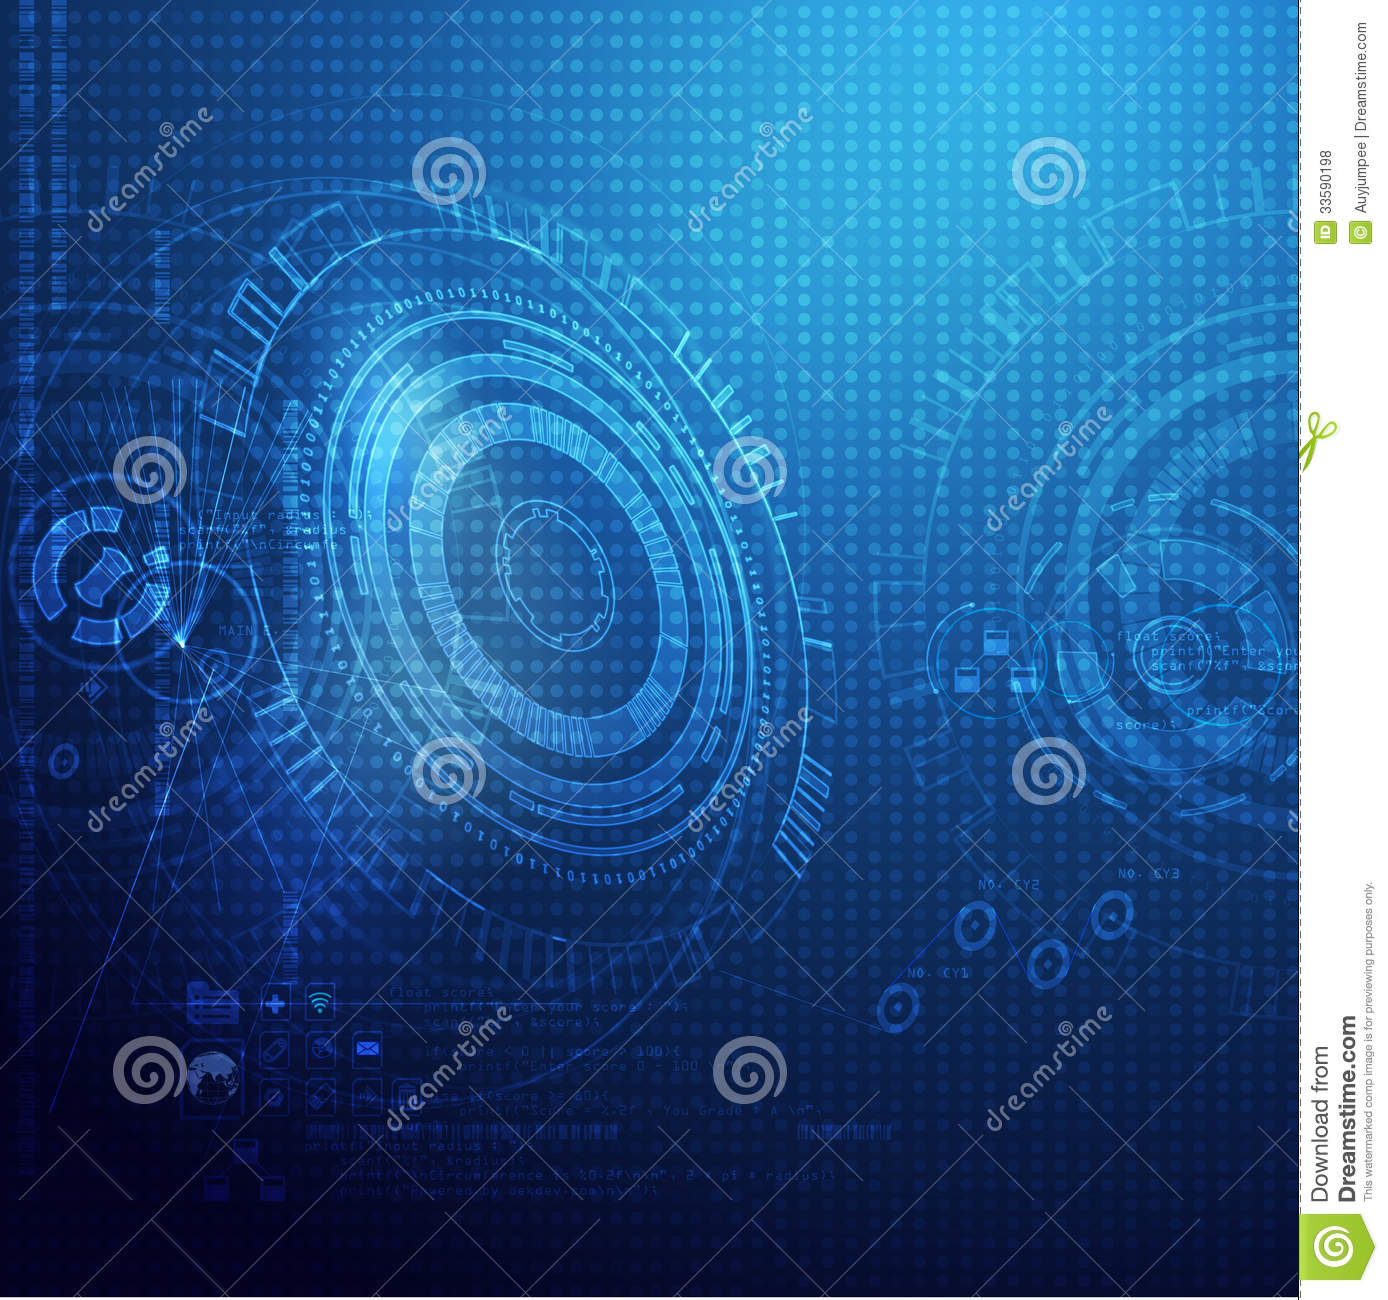 Technology Management Image: Global Technology Digital Background Royalty Free Stock